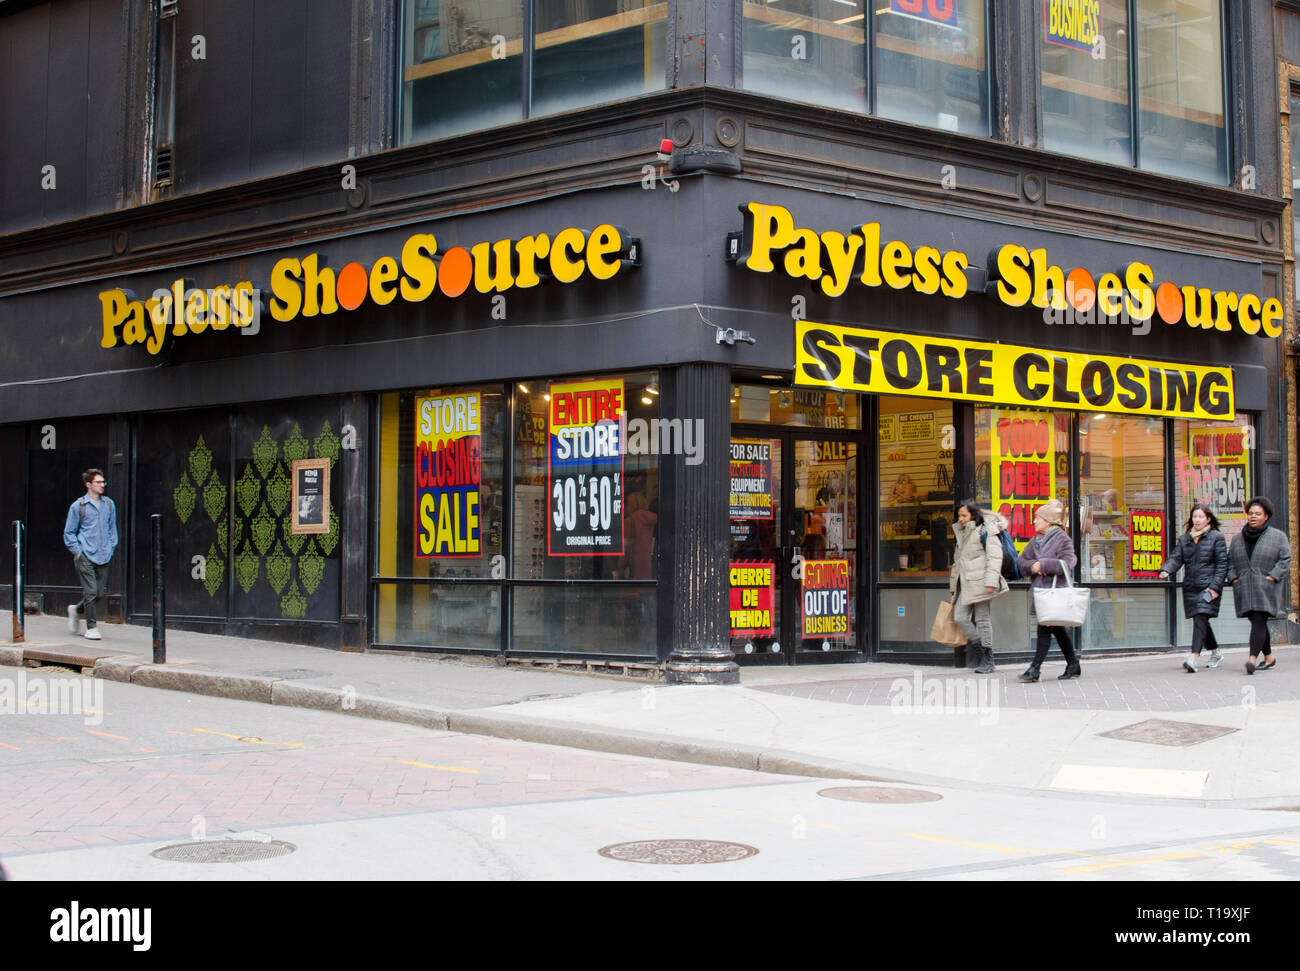 Payless Shoe Source store closing with going out of business signs and motion of people walking by at Downtown Crossing in Boston, Massachusetts USA - Stock Image